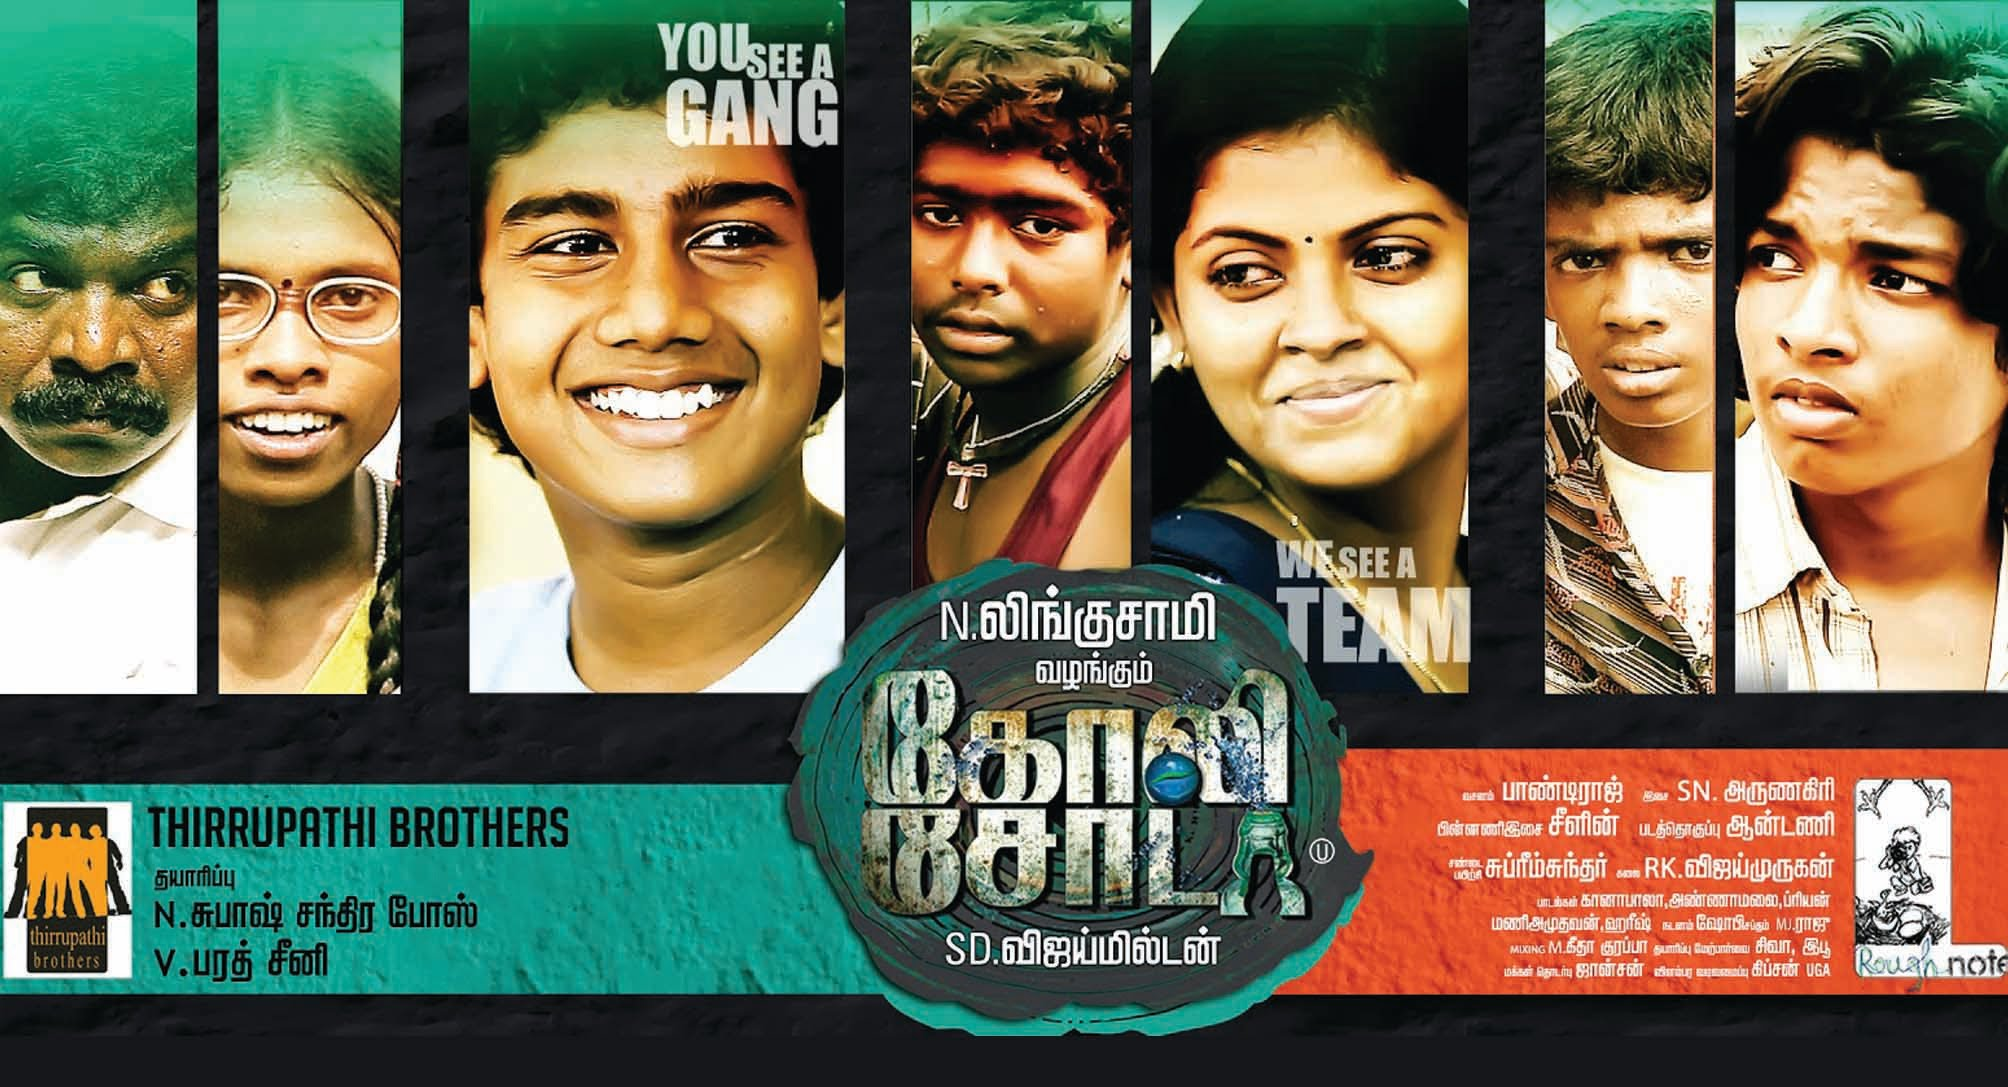 Goli Soda 2 movie begins